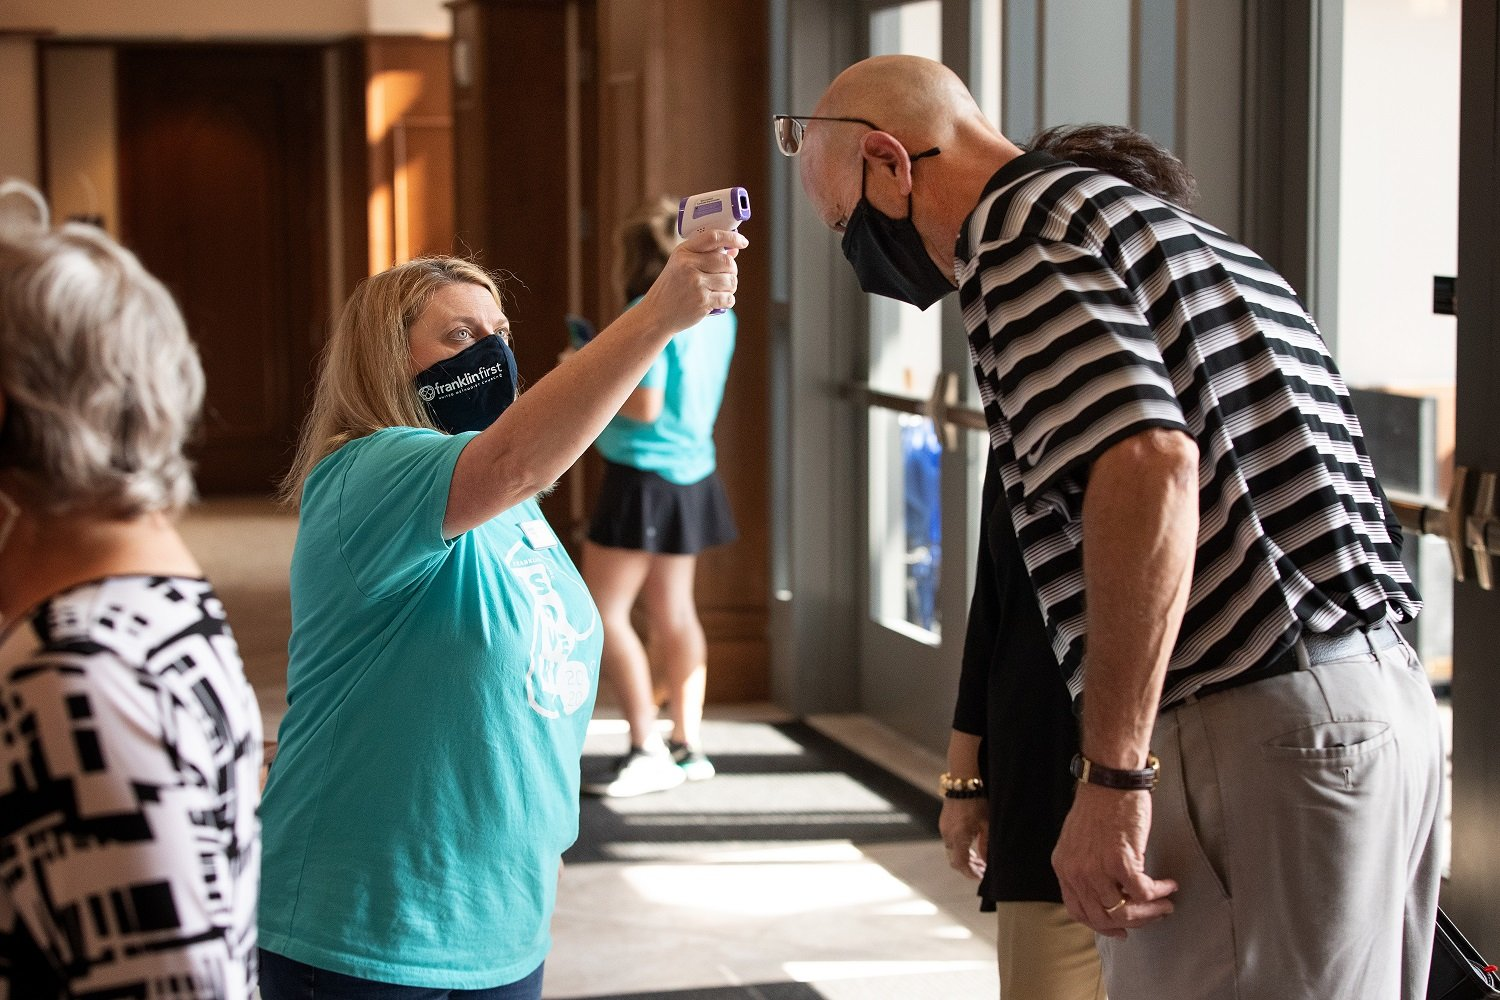 Volunteer Jennifer Jannetty checks James Crigger's temperature as he arrives for worship at Franklin (Tenn.) First United Methodist Church. The church, which recently returned to in-person worship, has adopted safety protocols to help prevent the possible spread of COVID-19. Photo by Mike DuBose, UM News.